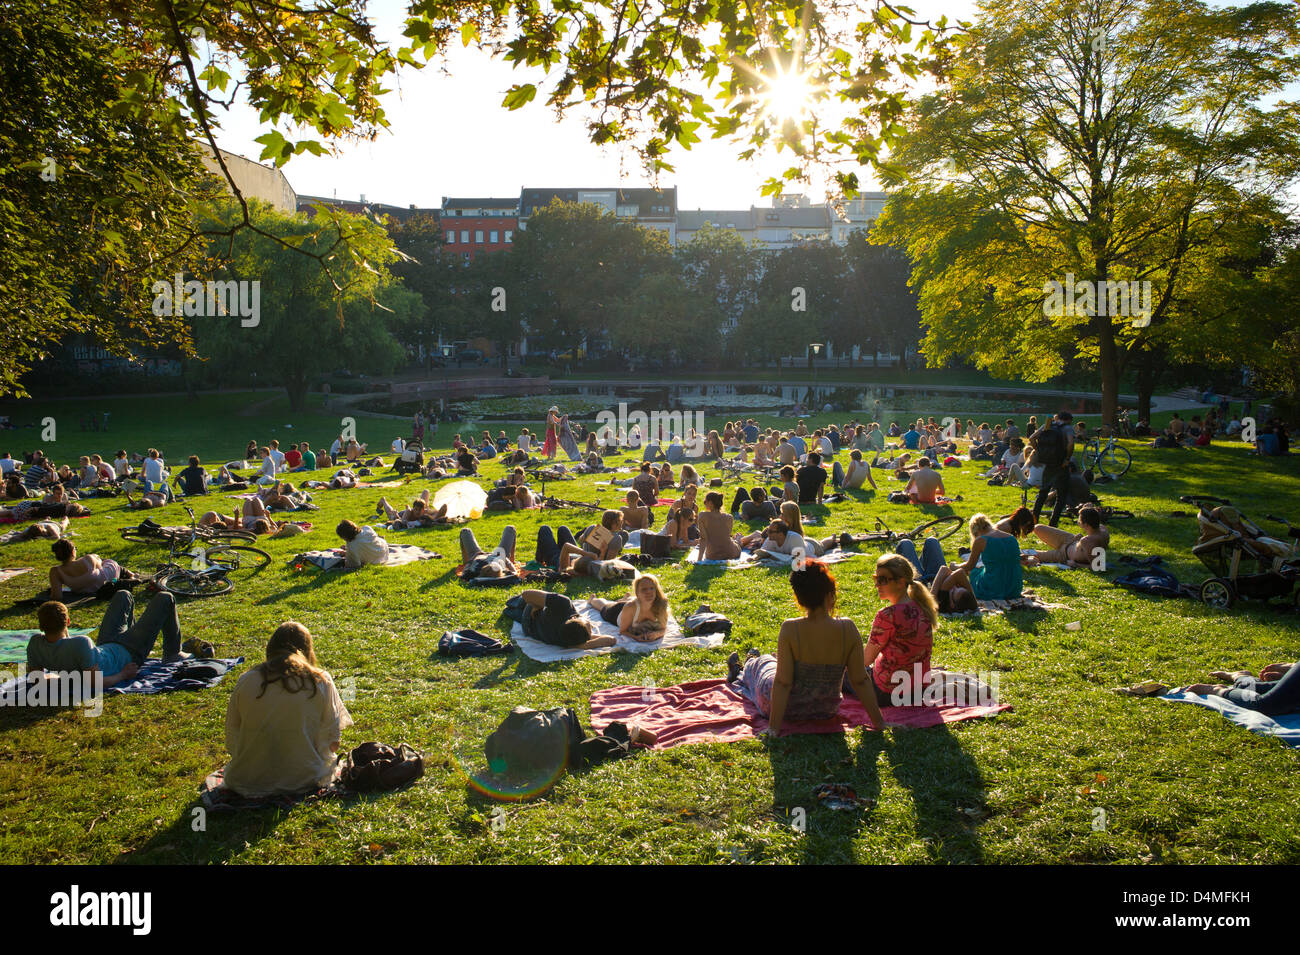 berlin germany people in the weinberg park stock photo royalty free image 54541077 alamy. Black Bedroom Furniture Sets. Home Design Ideas